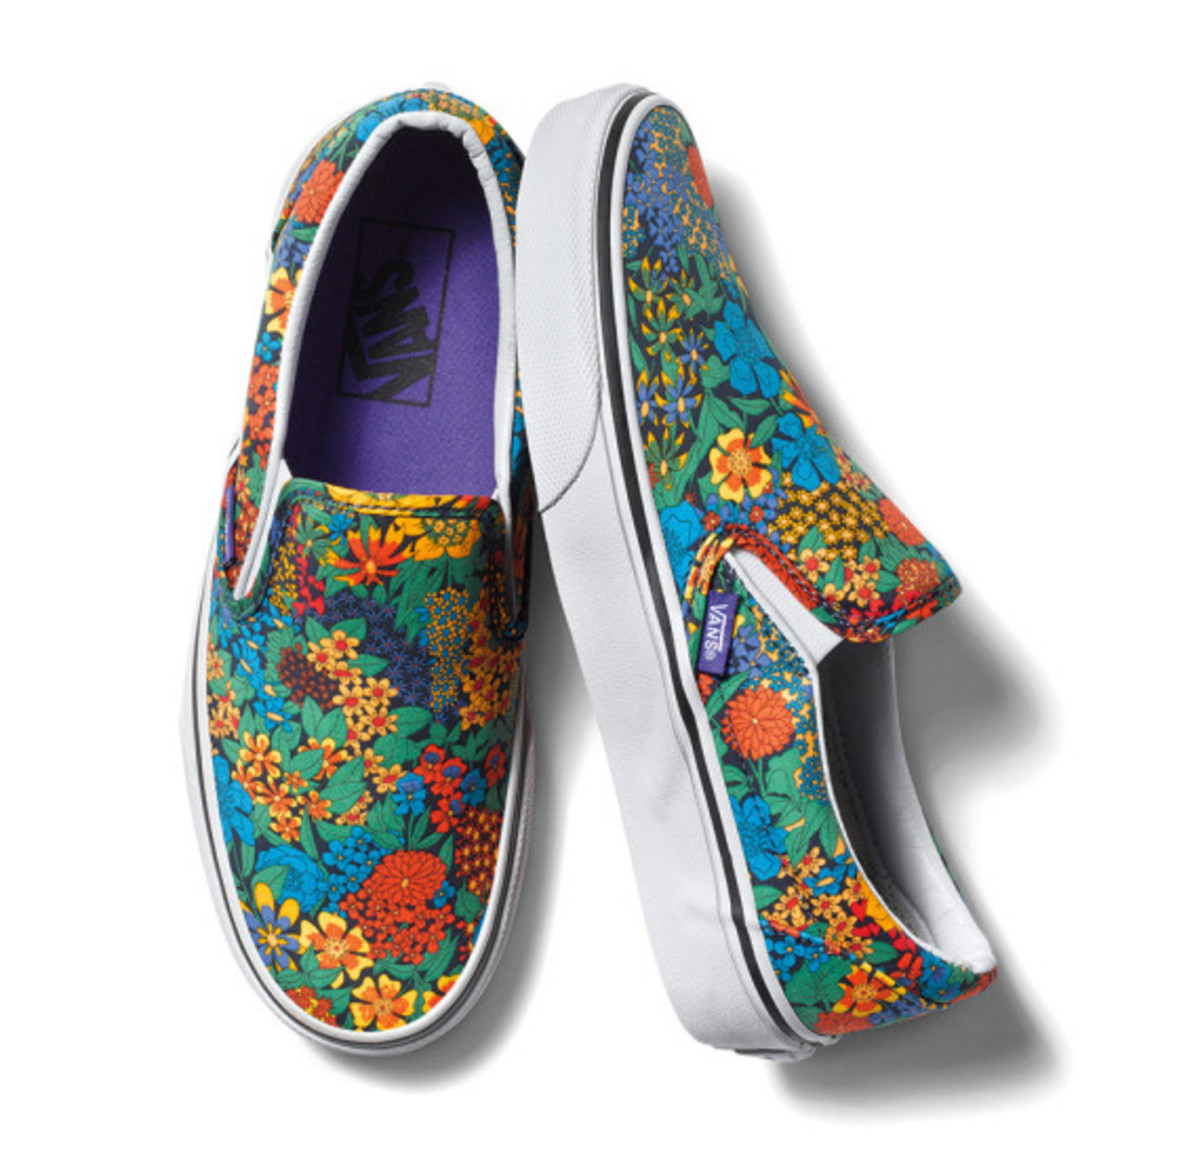 vans-liberty-art-fabrics-collection-for-women-03